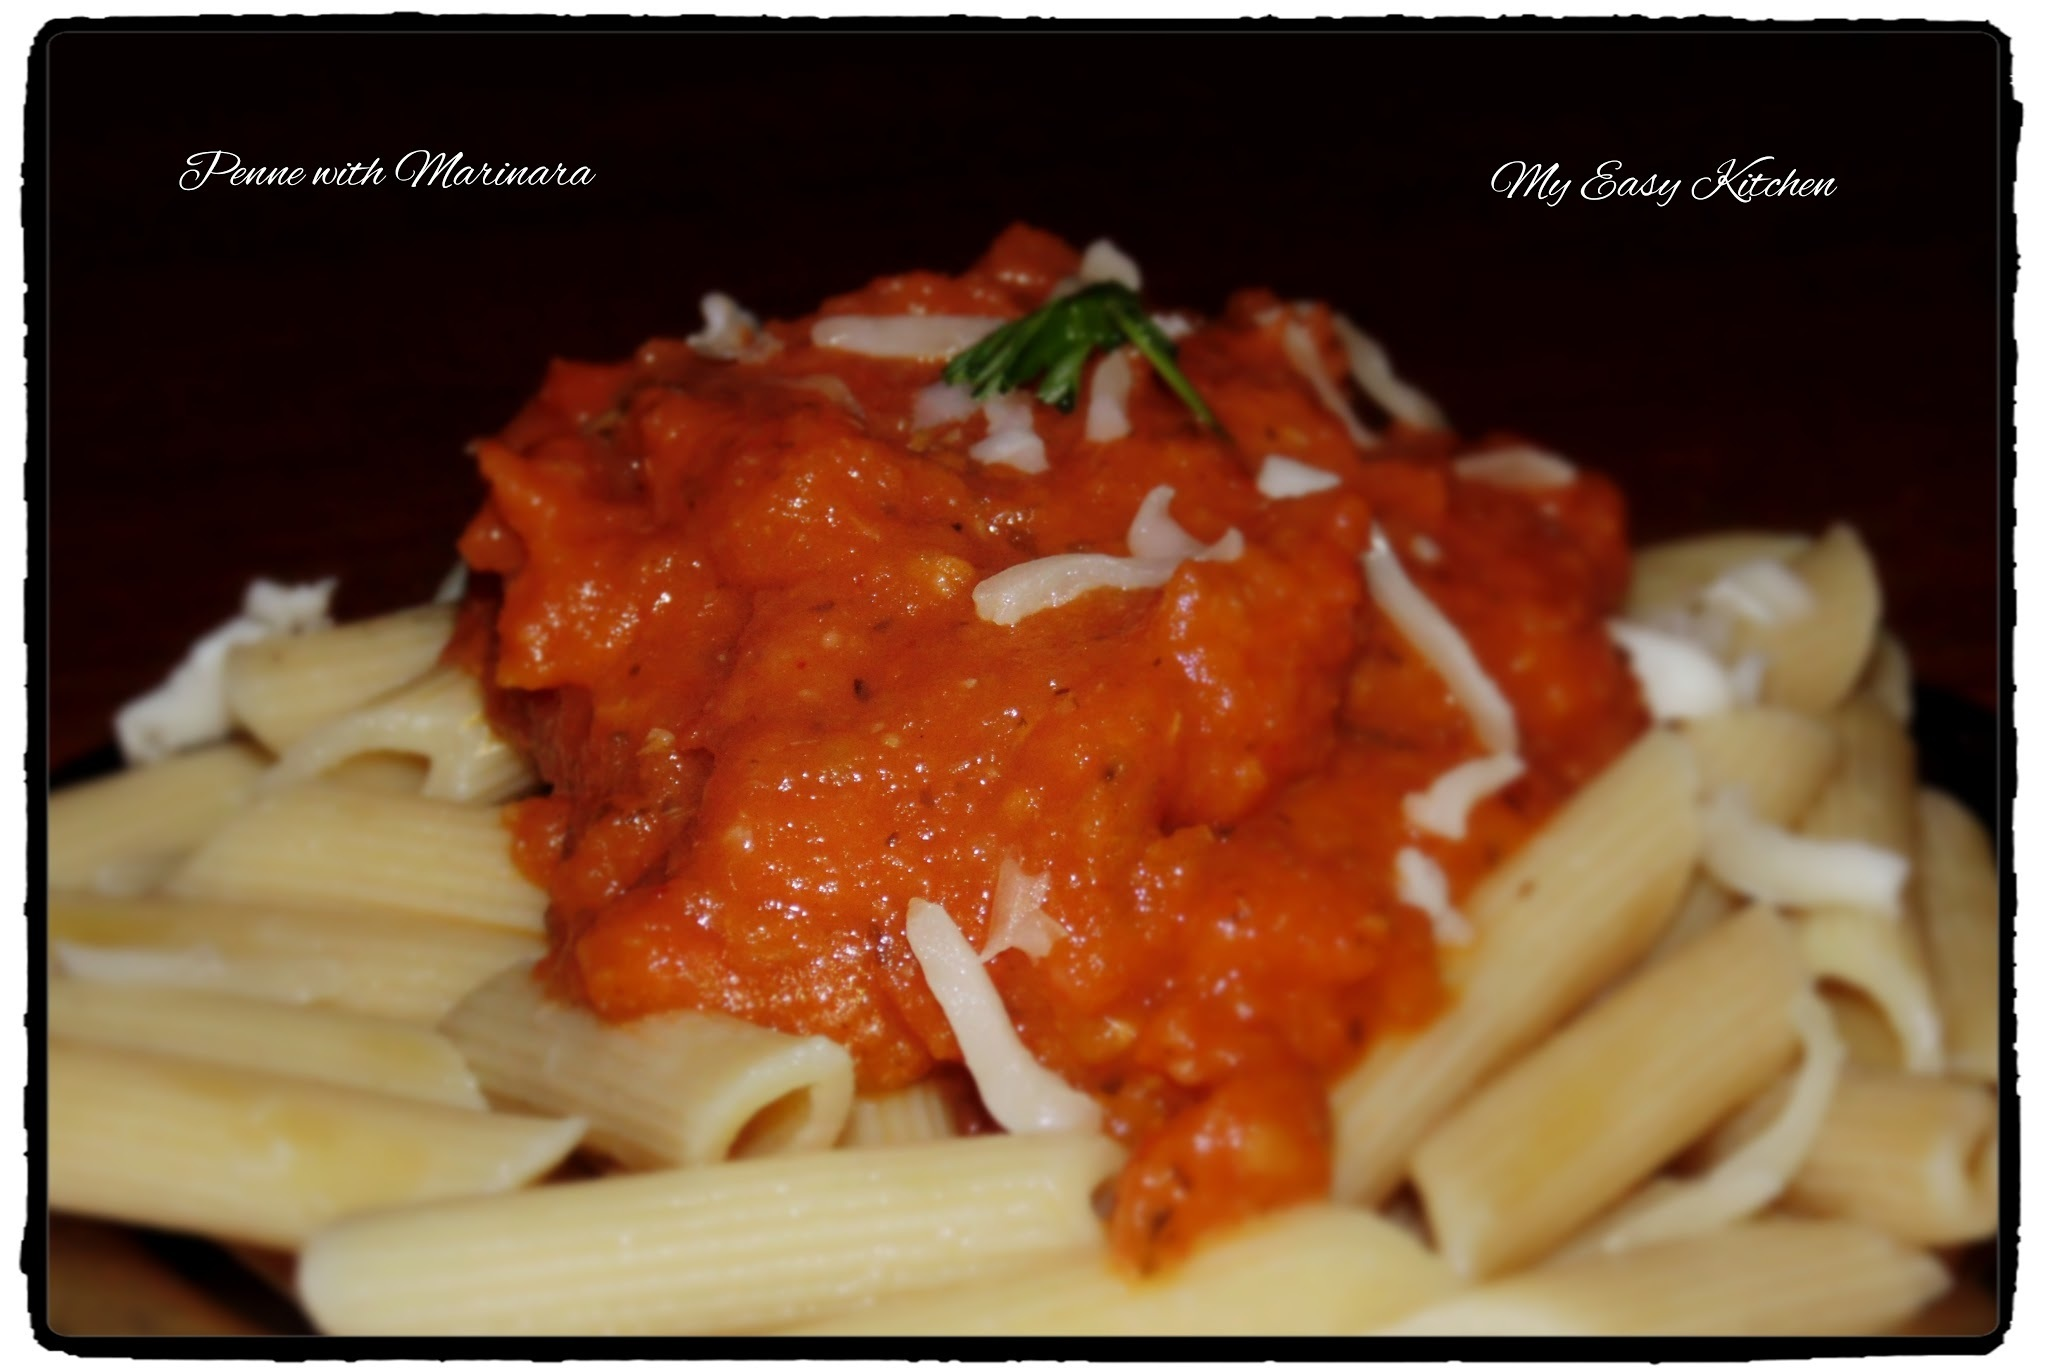 Pasta in tomato sauce or Pasta marinara / Penne with marinara sauce